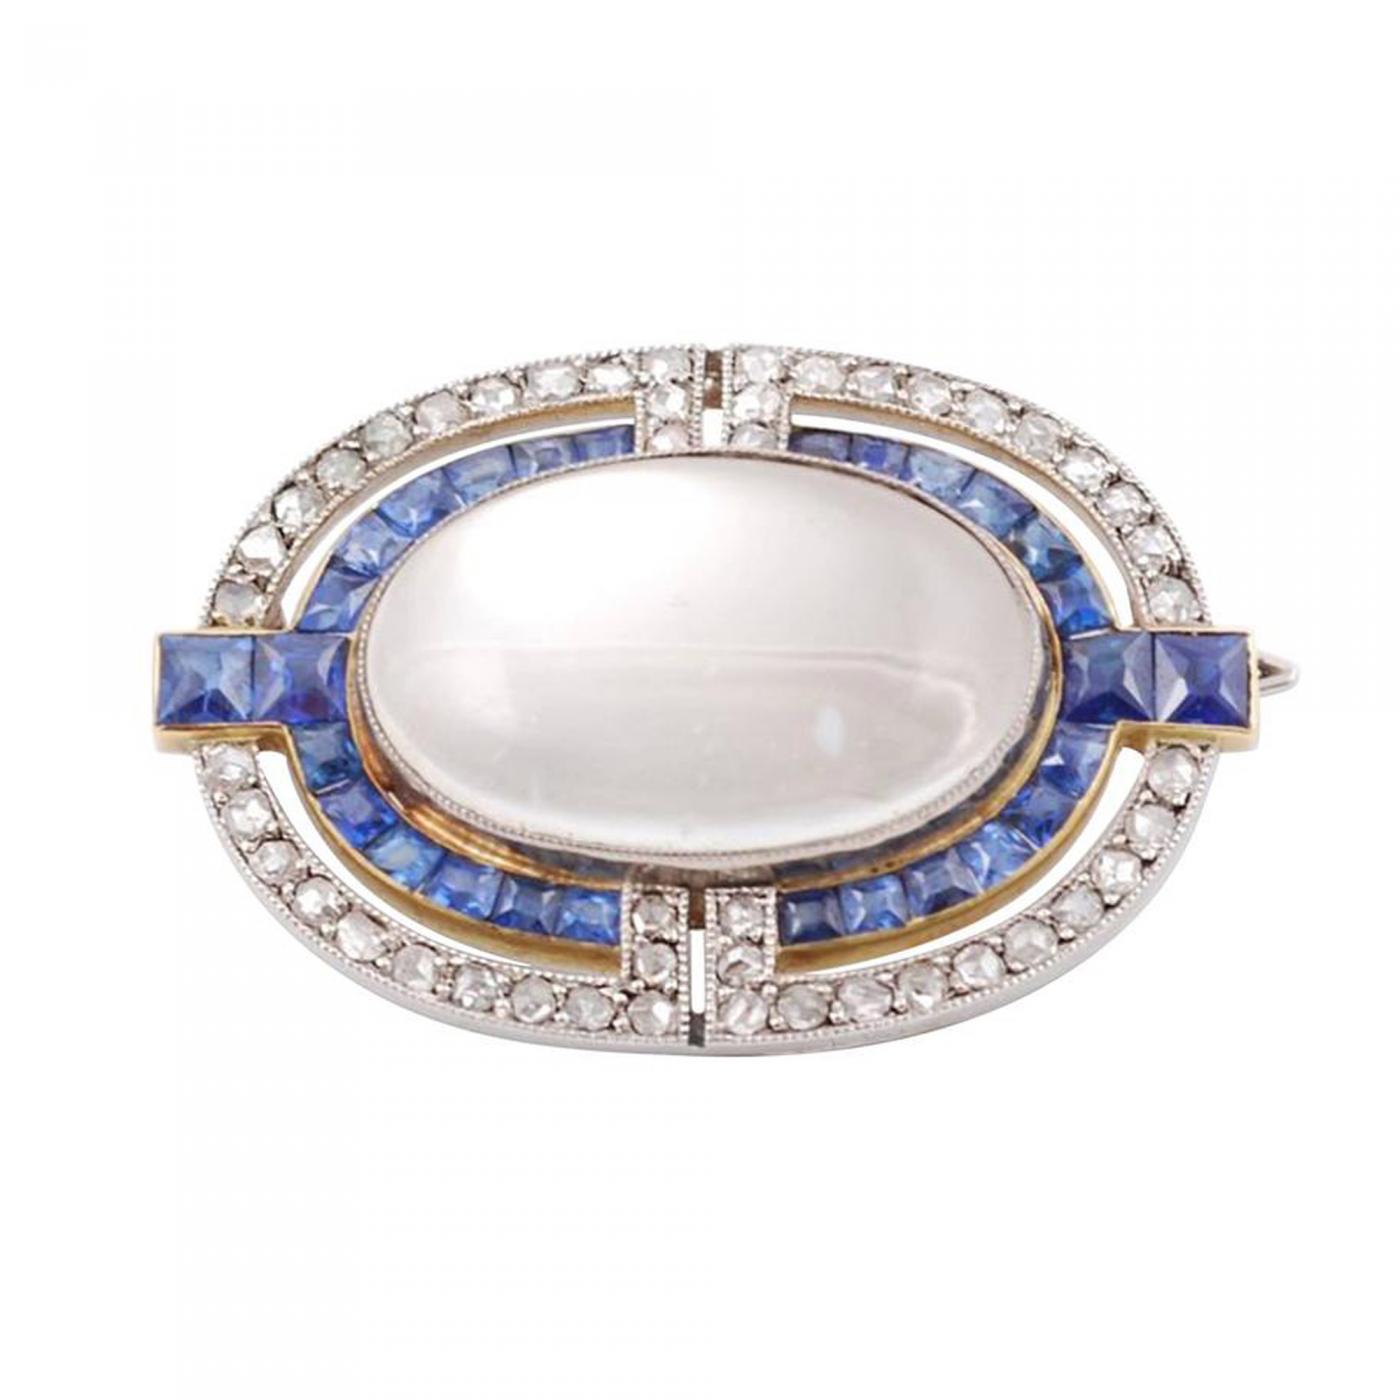 gold arthur georgie crafts moonstones on gem gaskin best pinterest arts and jewellery silver vintage images an moonstone set lisailan brooch peridots